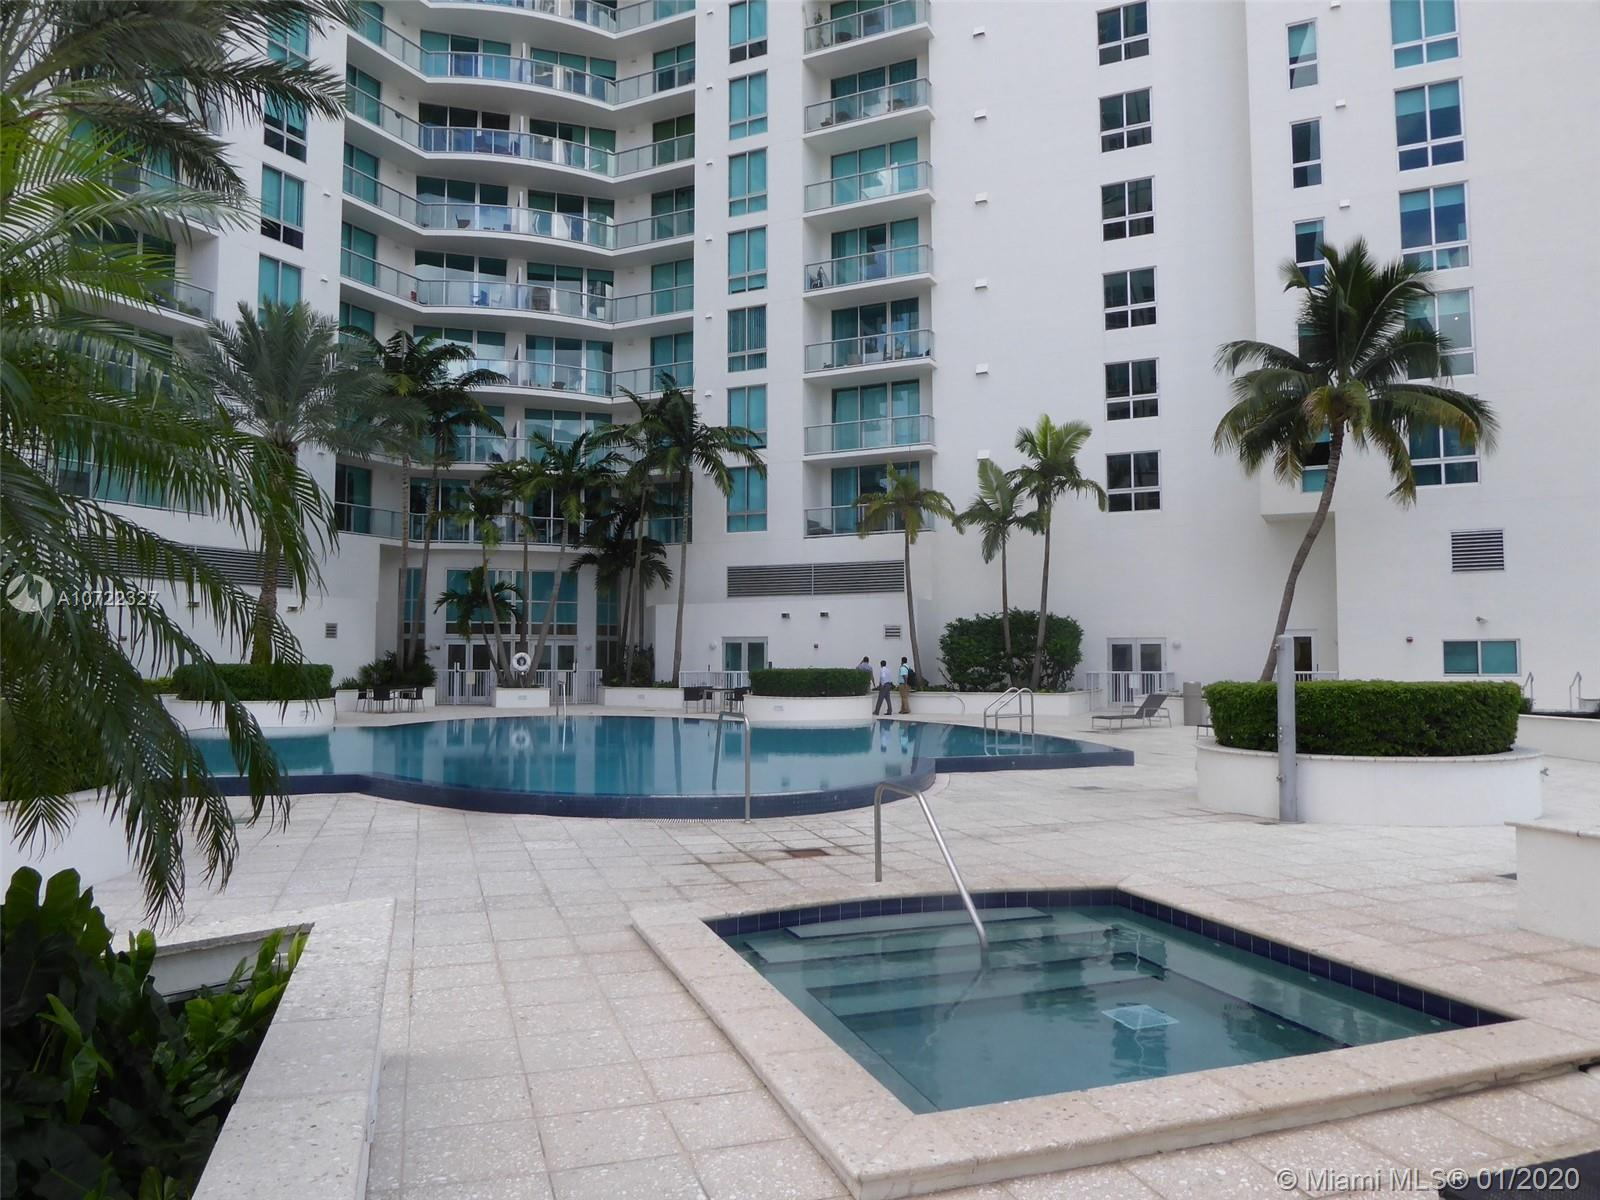 300 Biscayne blvd-PH 3802 miami-fl-33131-a10722327-Pic38